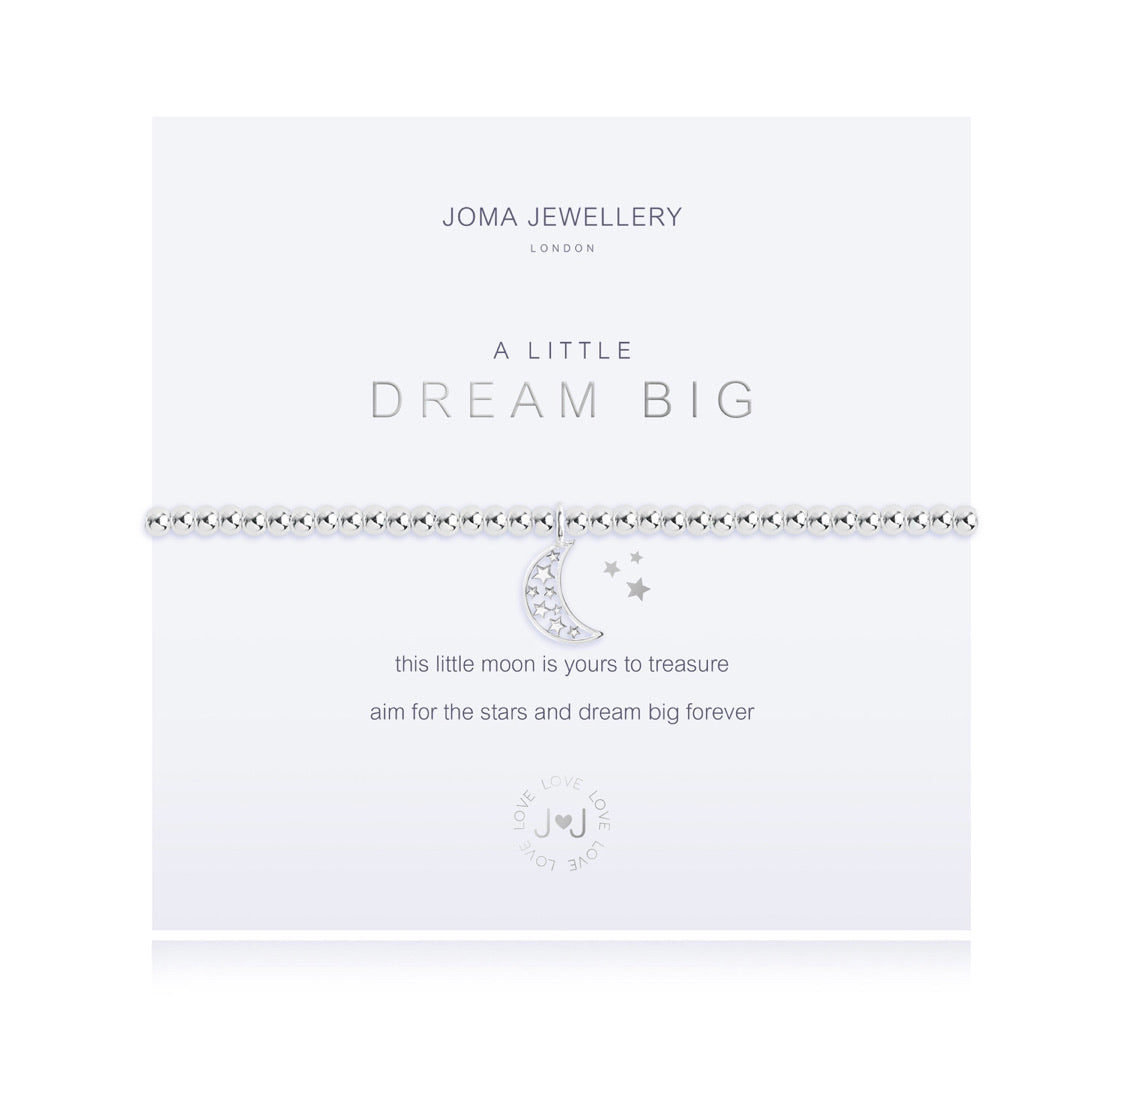 Joma Jewellery 'A Little' Dream Big